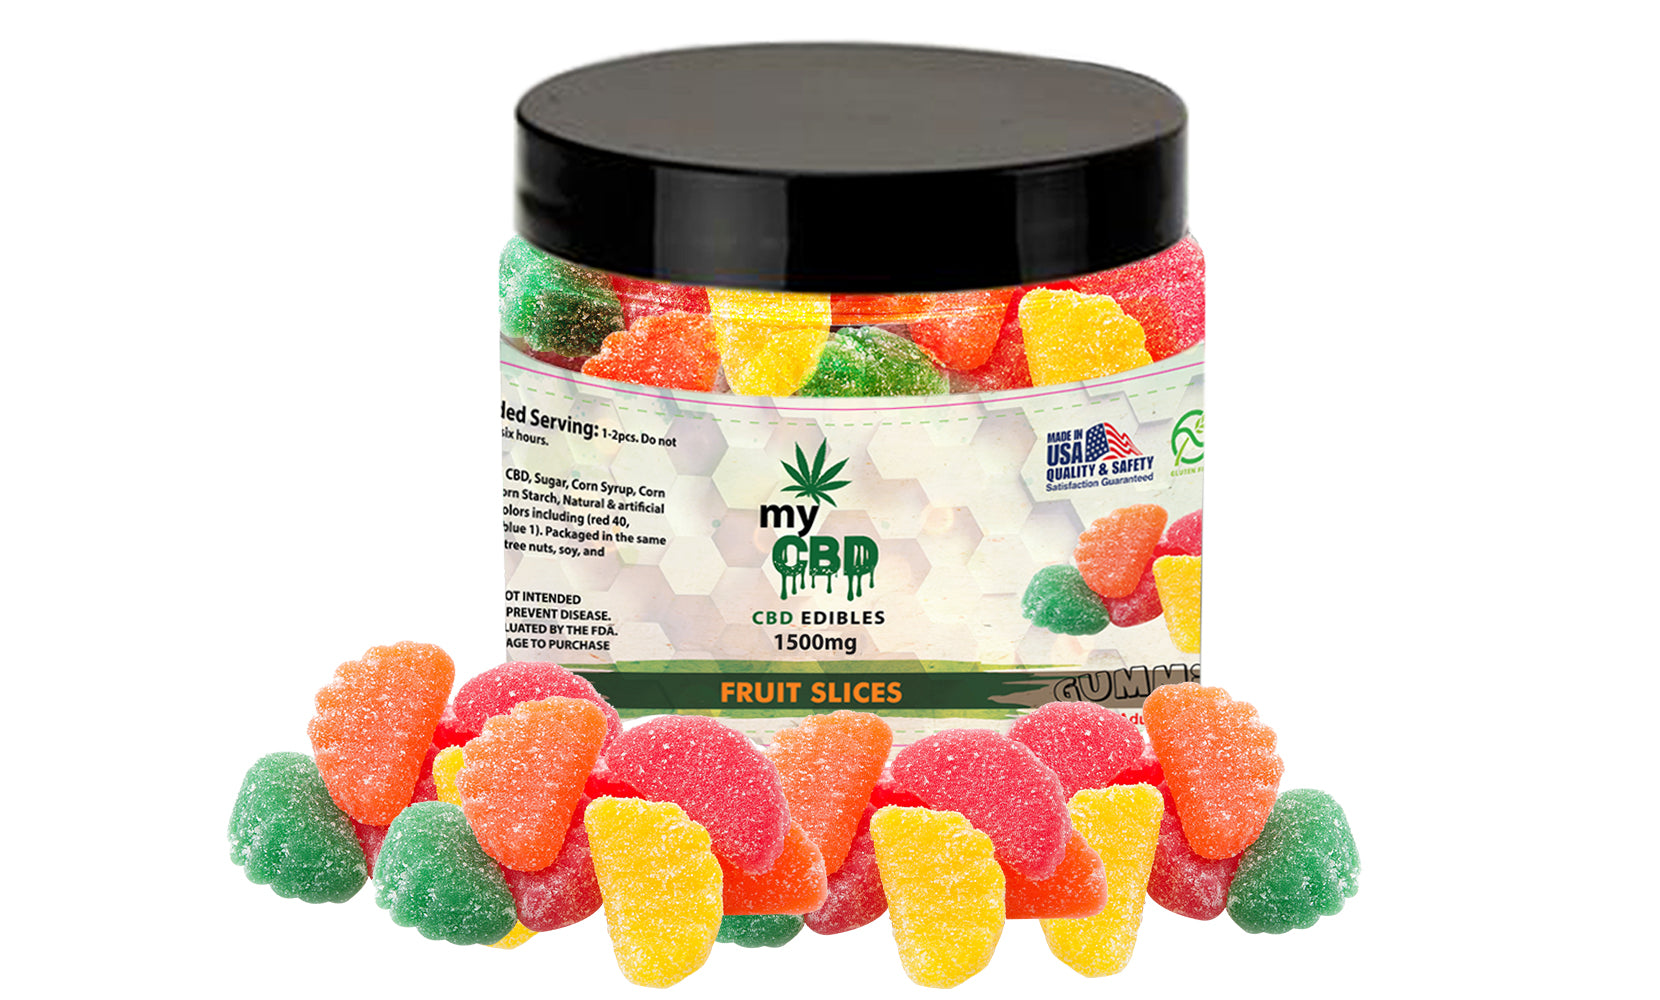 CBD Gummies From myCBD (600mg, 1500mg or 3000mg)